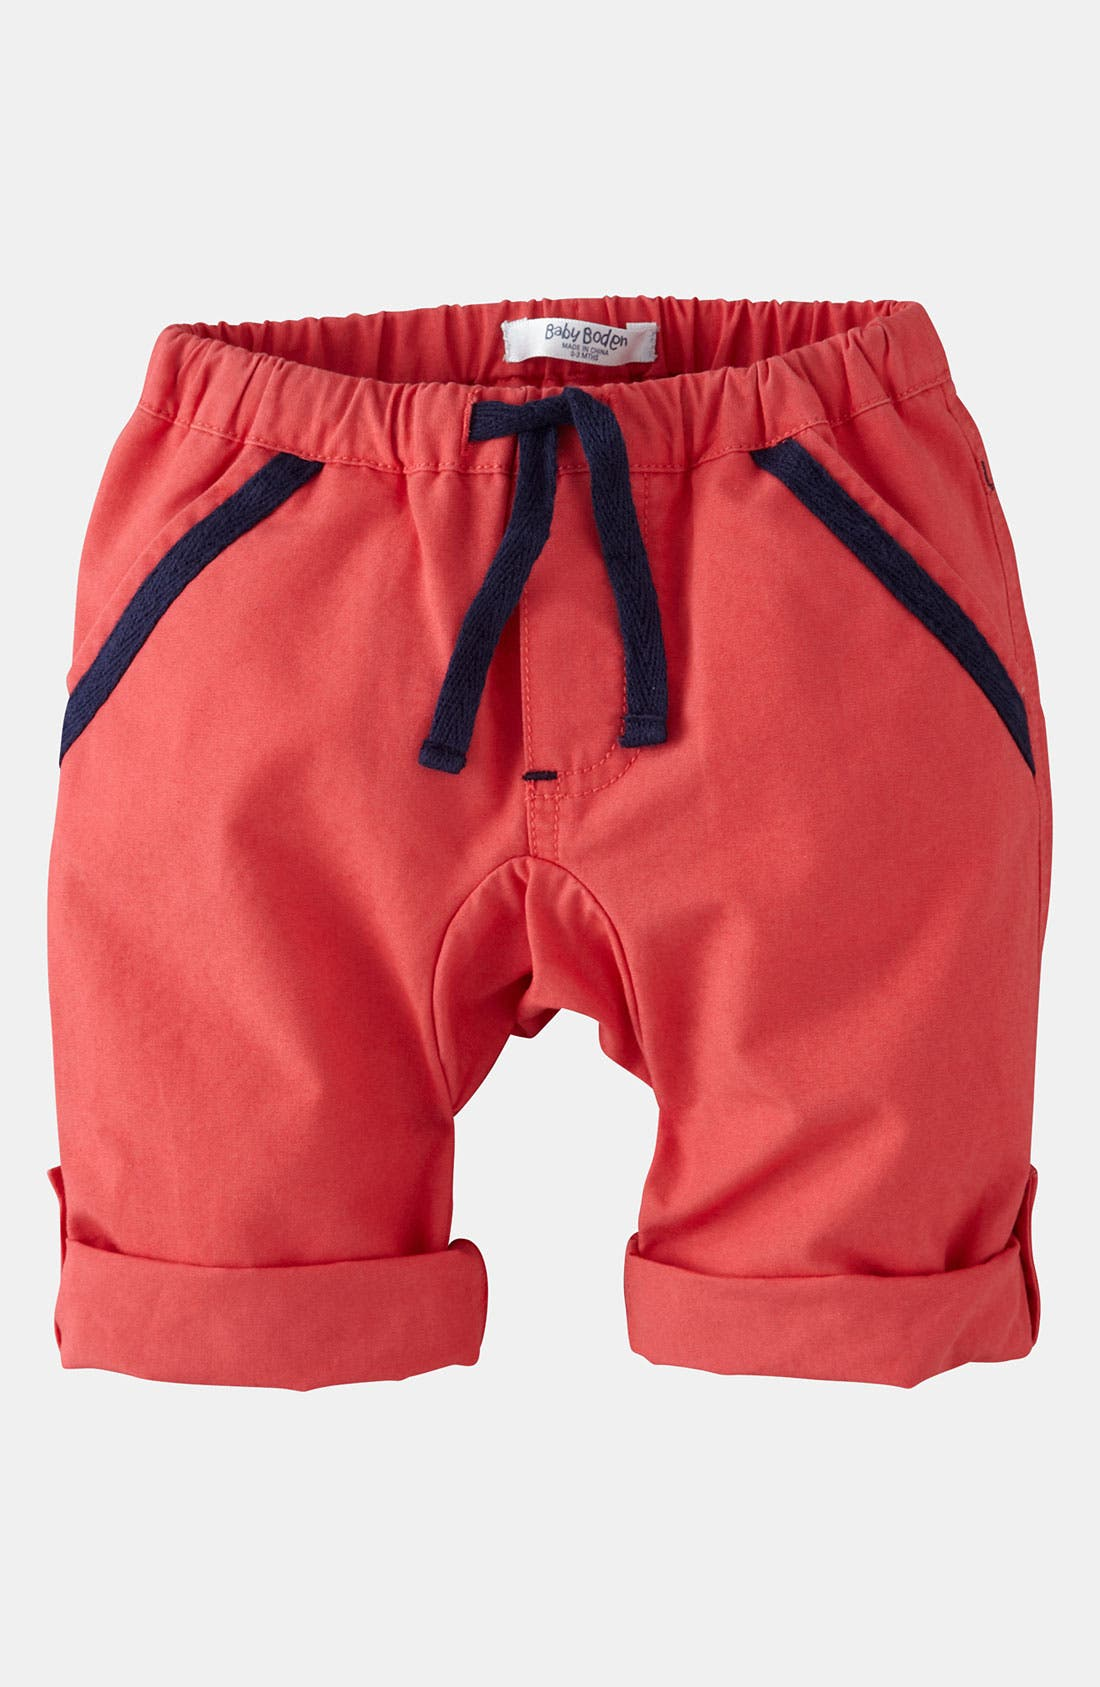 Alternate Image 1 Selected - Mini Boden 'Roll Up' Pants (Baby)